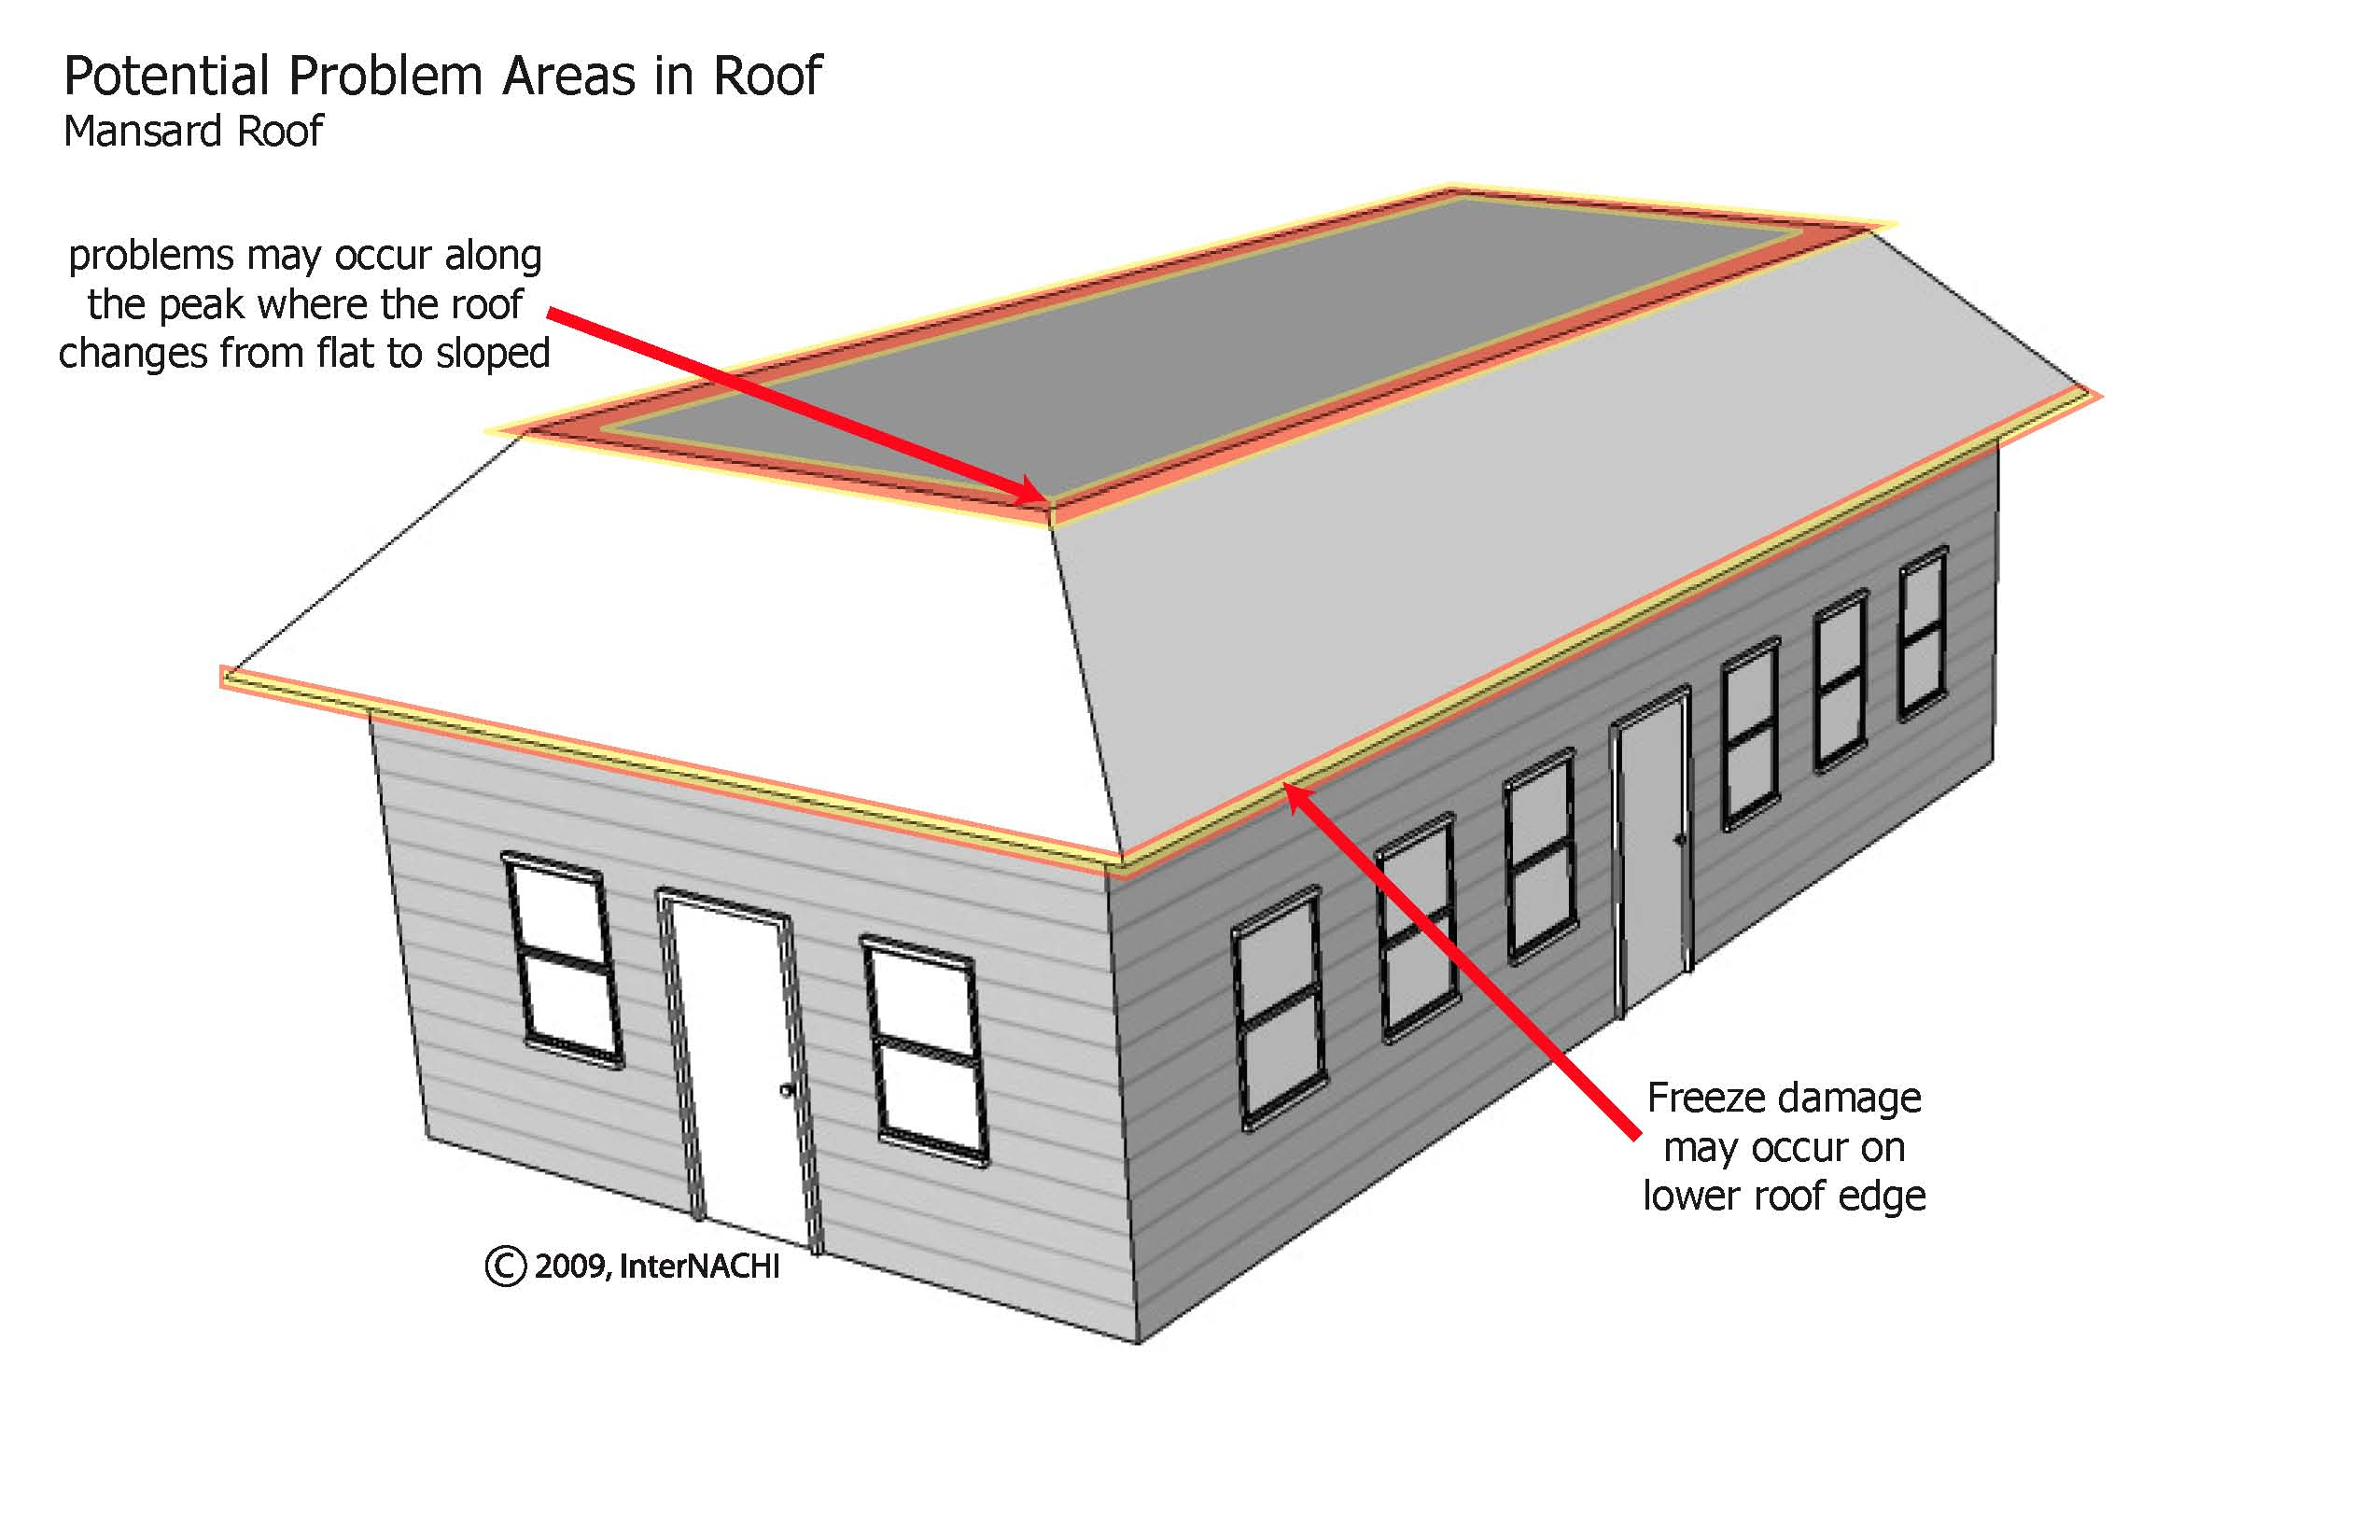 Cost Of Building A Mansard Roof